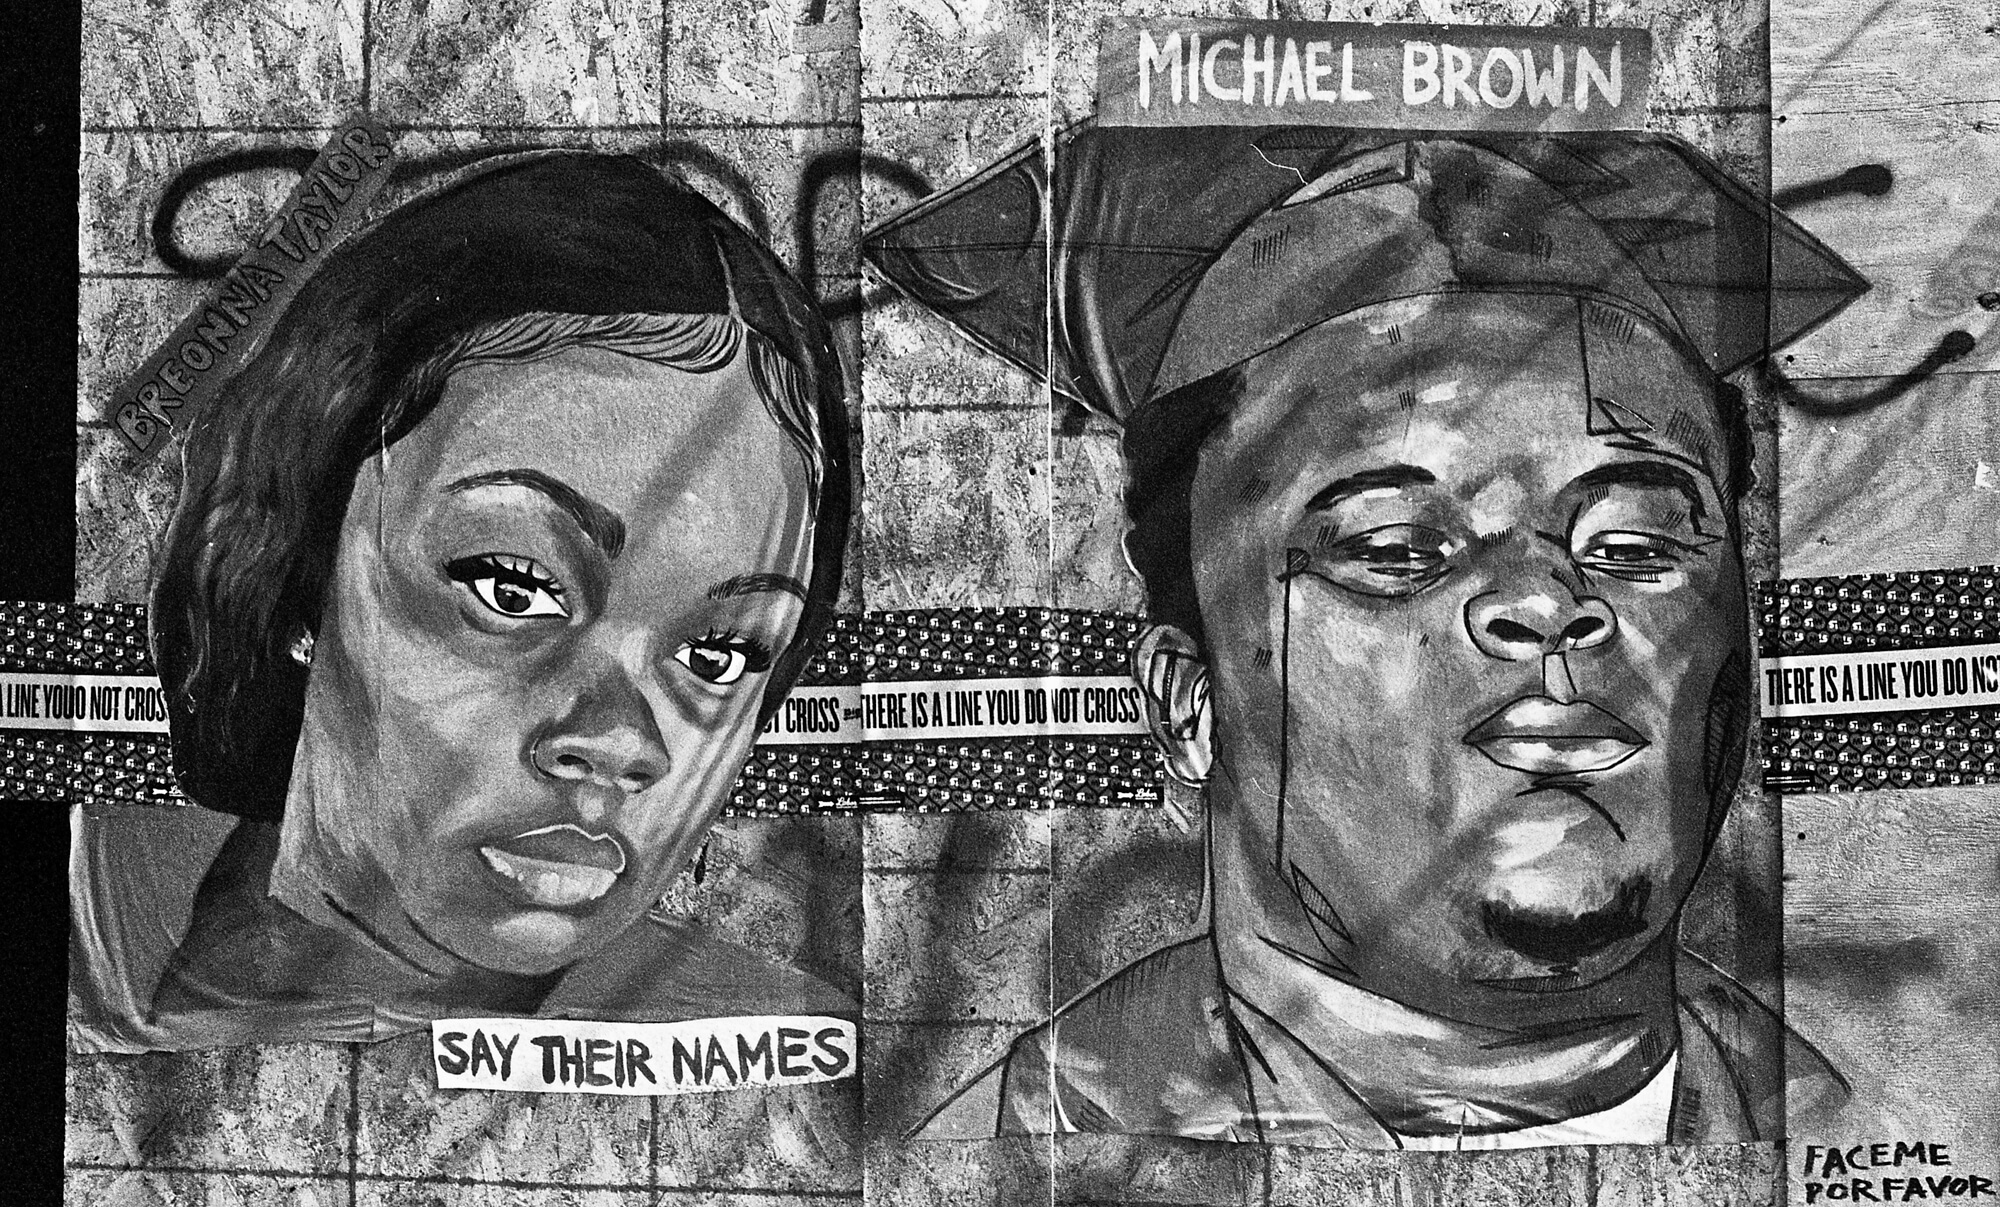 Black-and-white mural of two people killed by police